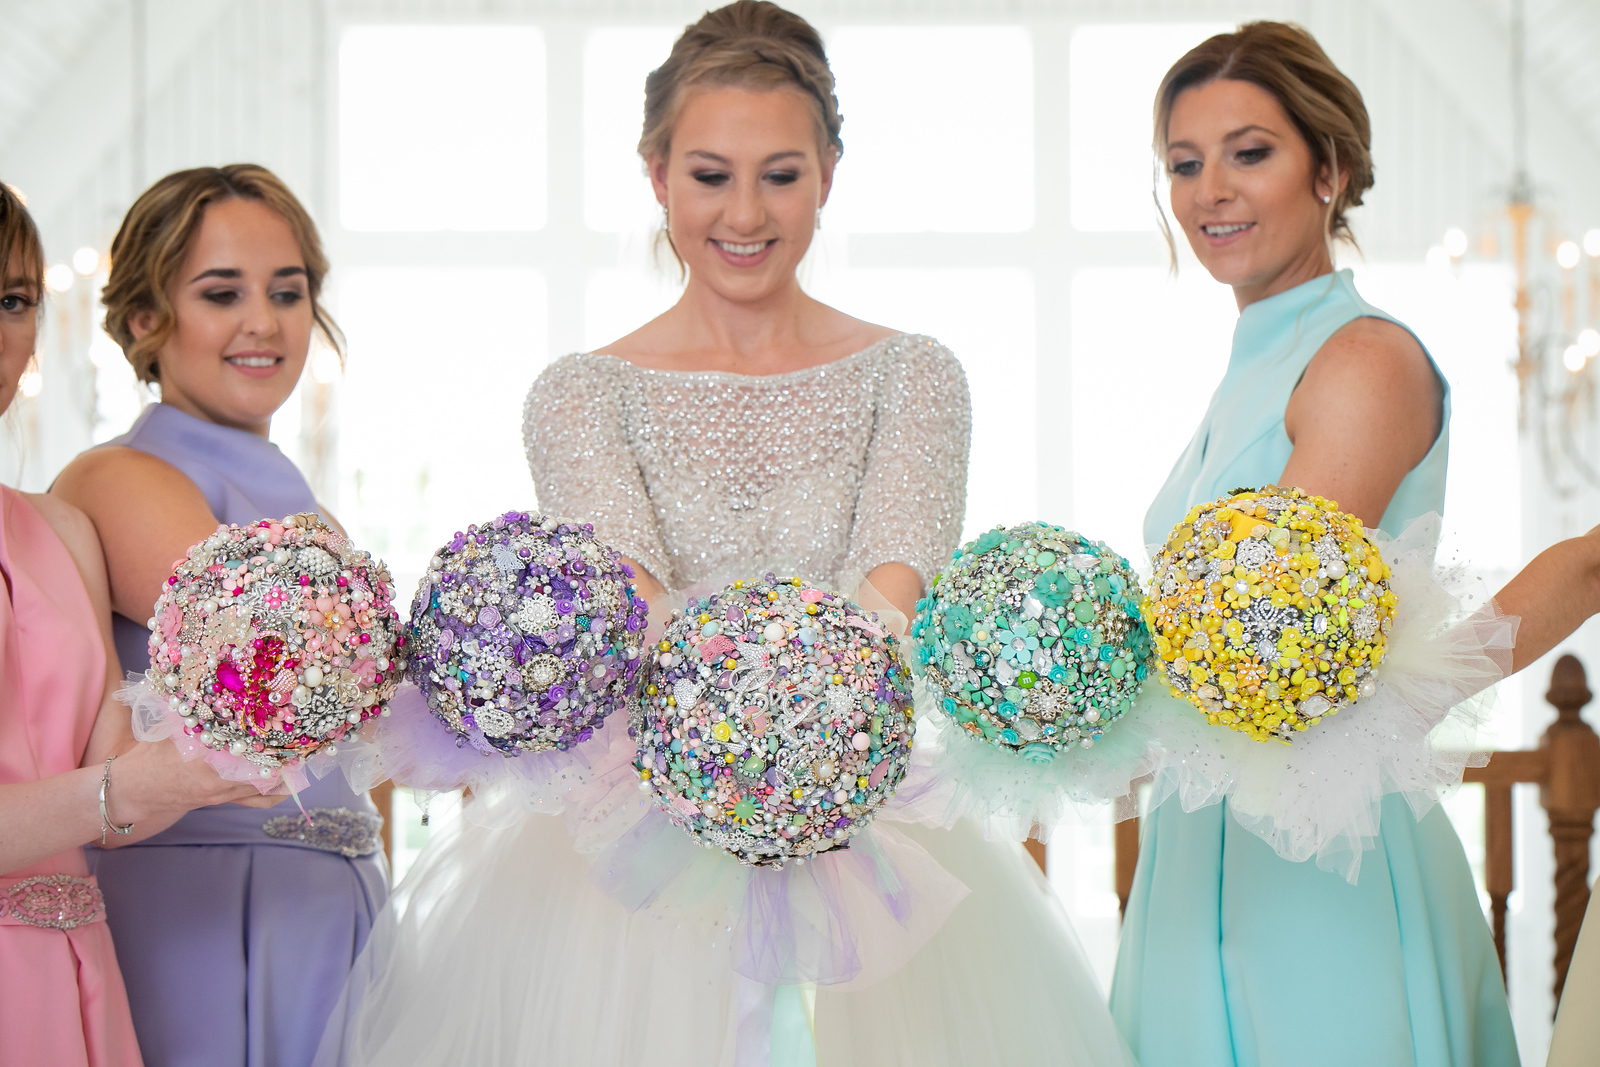 a bride and her bridesmaids holding out their bouquets made of plastic jewelry